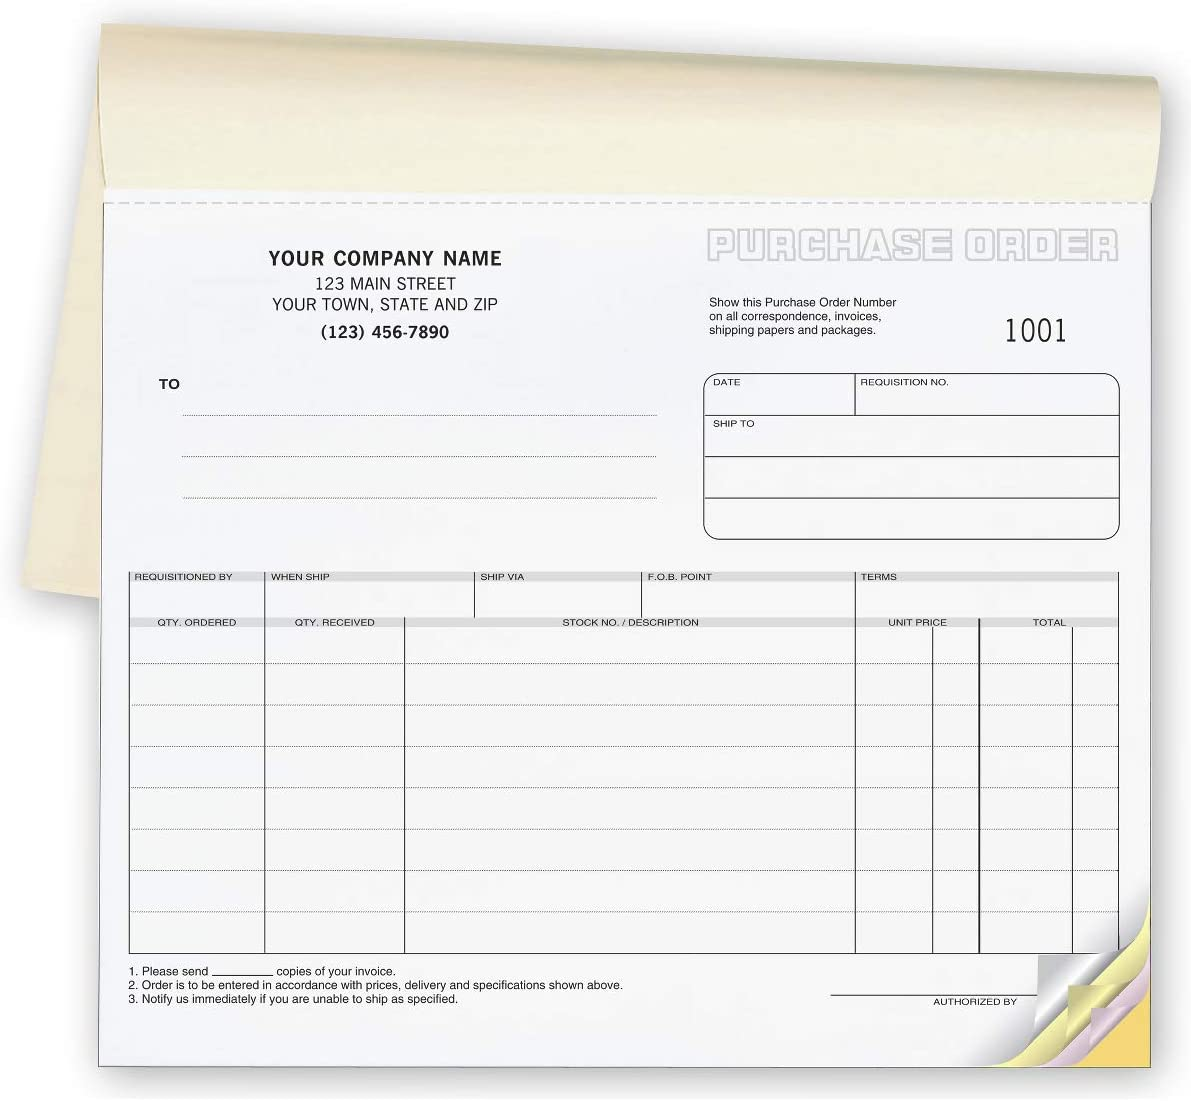 CheckSimple Purchase Order Forms 8 1//2 x 7 500 2-Part Forms Short Format Custom Business Info